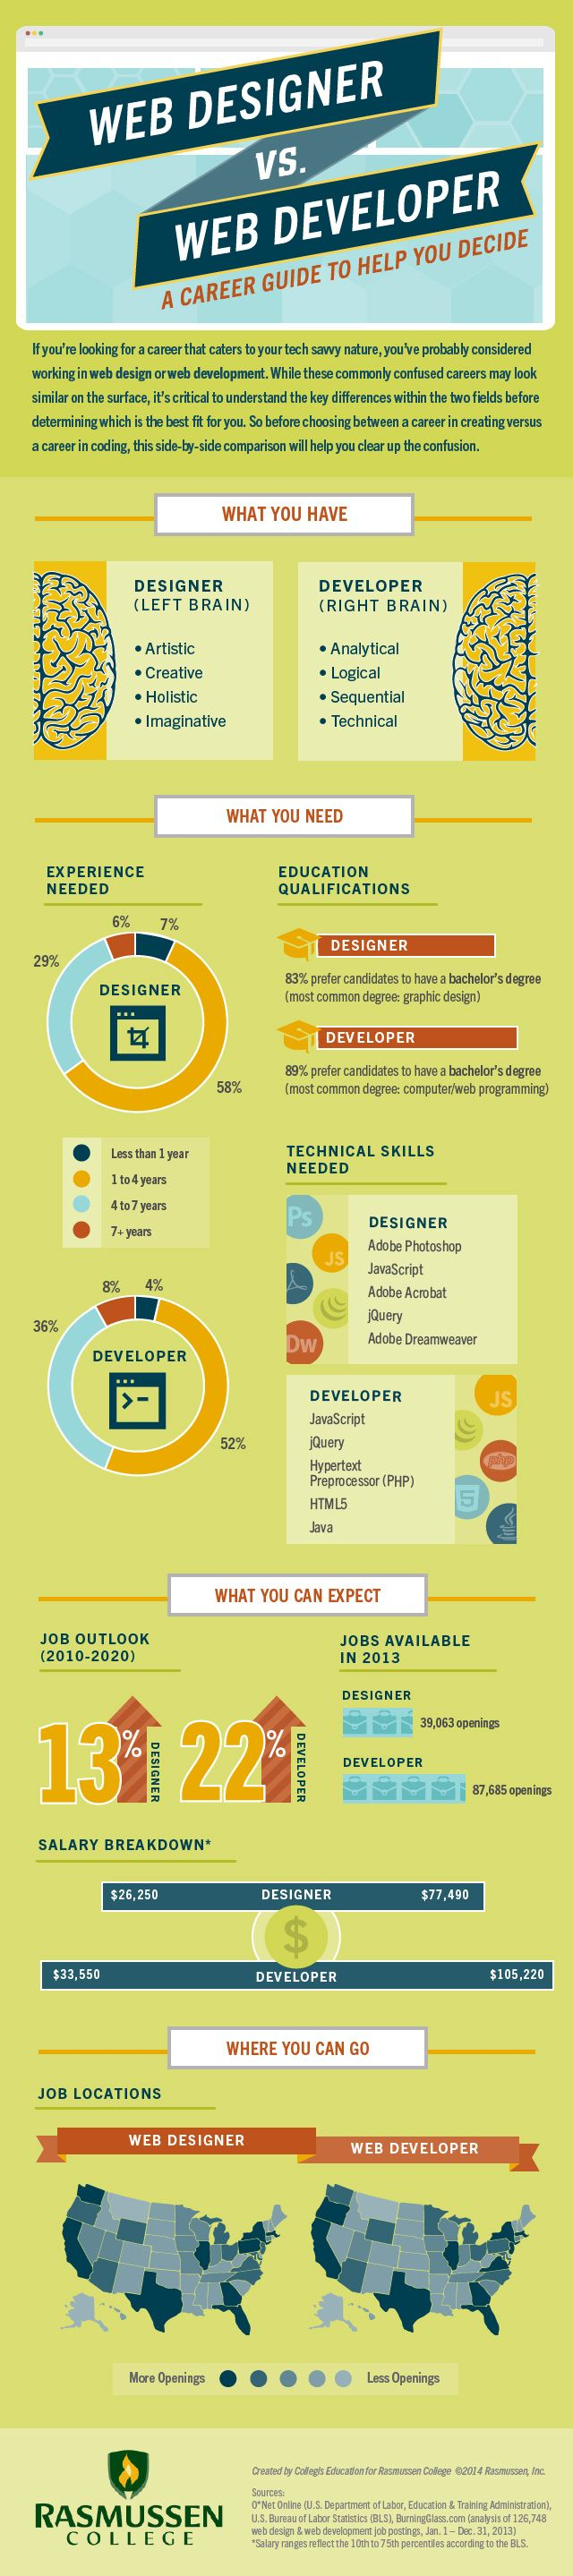 web designer vs web developer http://www.helpmequitthe9to5.com web design tips #webdesign #webdesigntips #infographic http://amfahtech.co.uk